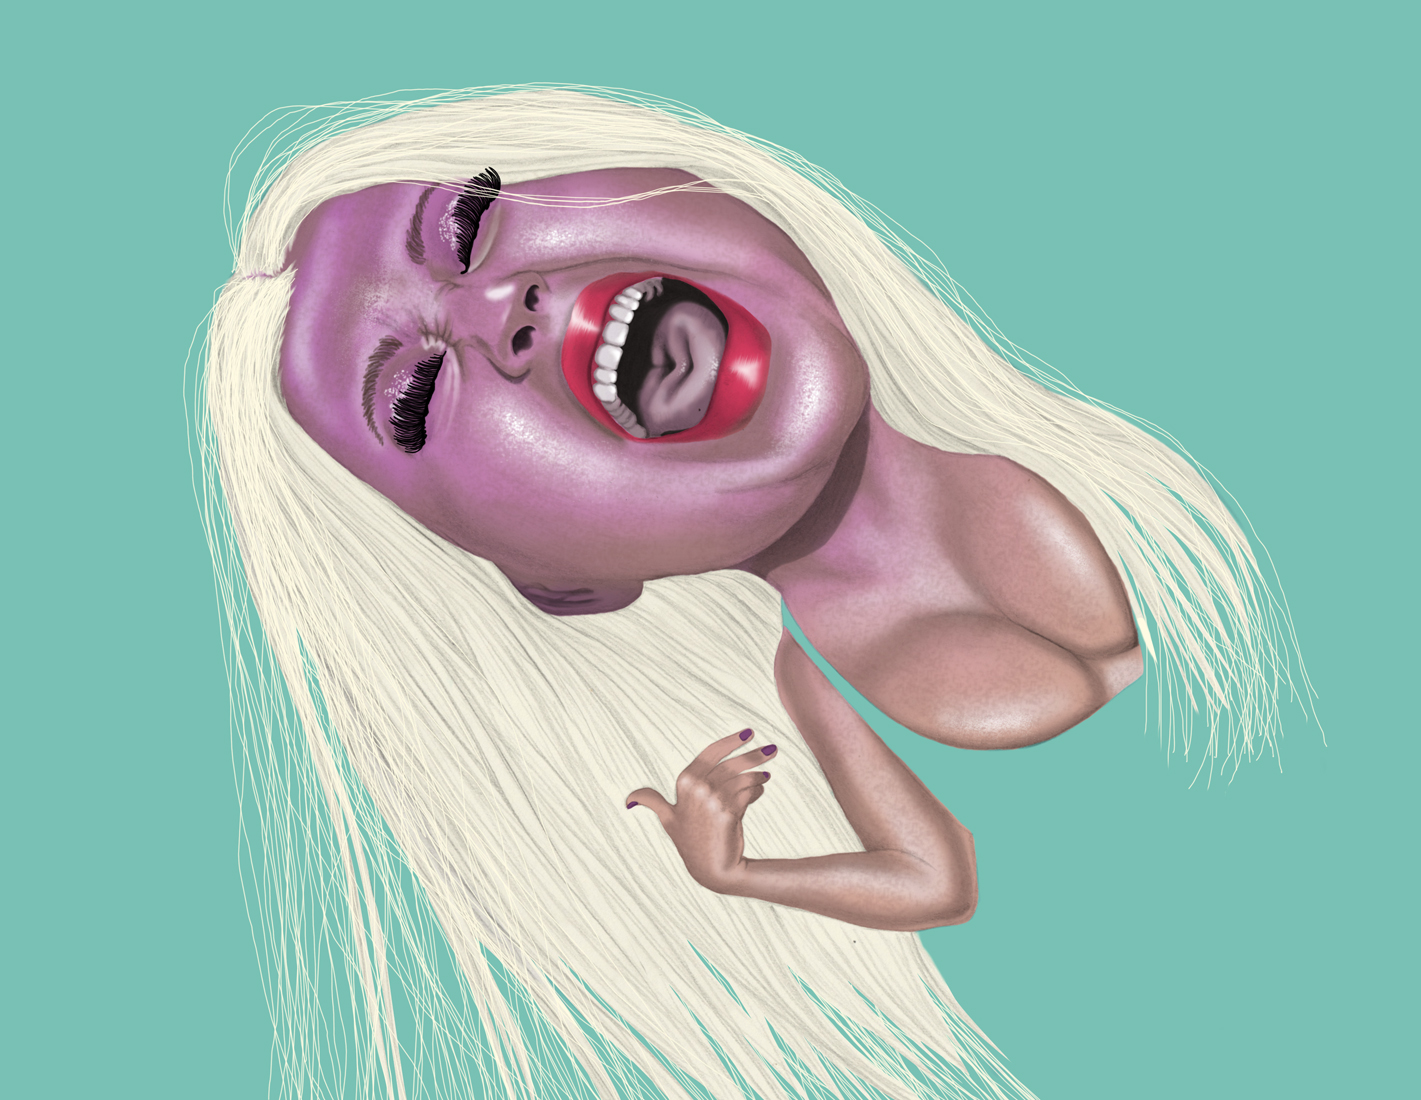 illustration, illustrations, illustrator, illustrators, woman, women, sing, singing, christina aguilera, famous, blonde, scream, yell, yelling, breasts